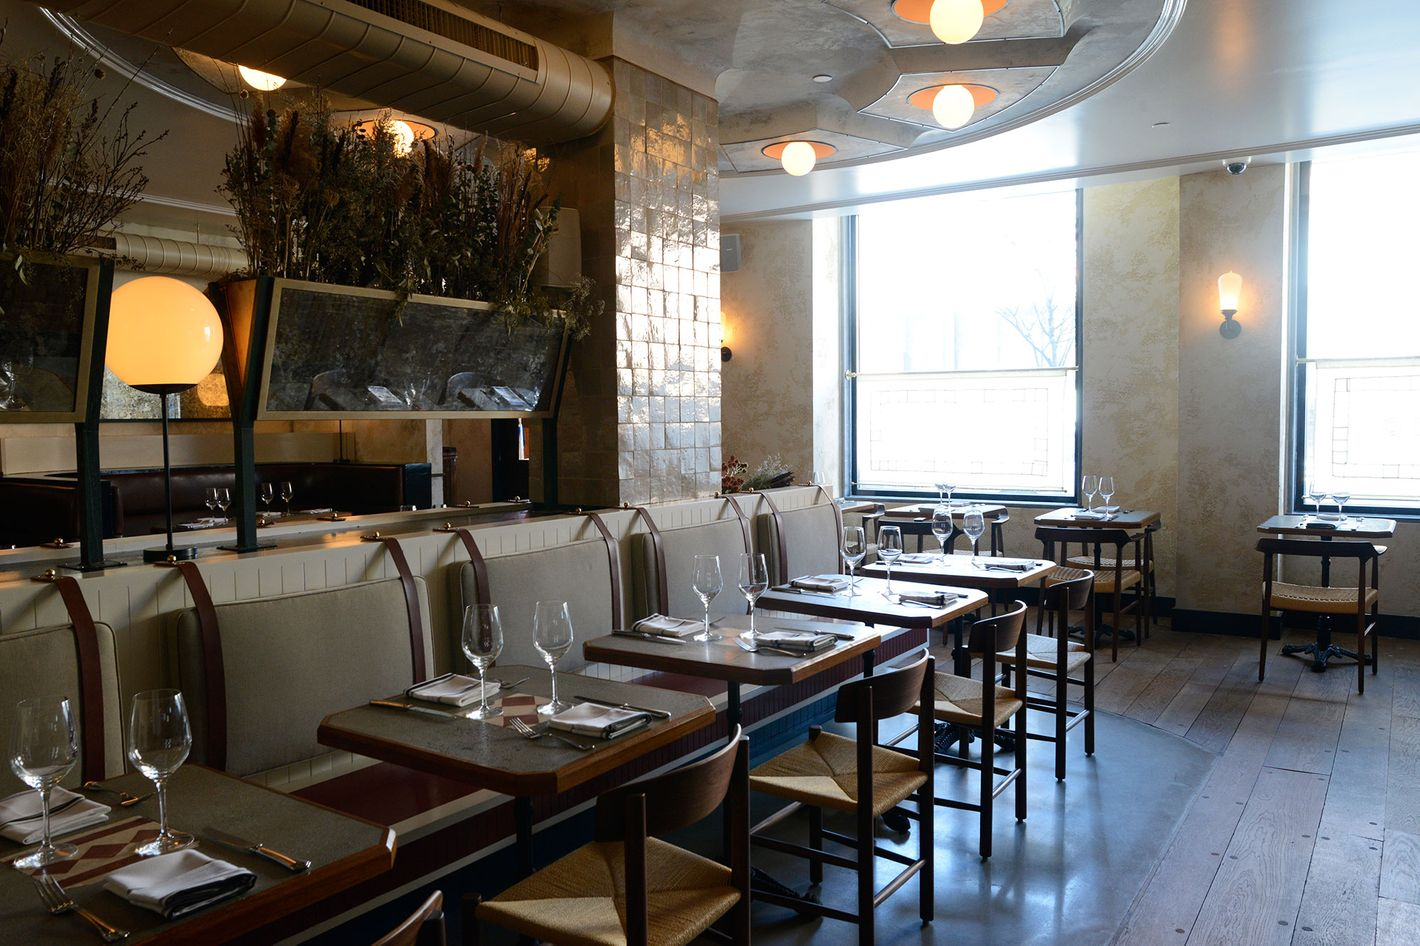 First Look at Barano, the Williamsburg Restaurant From